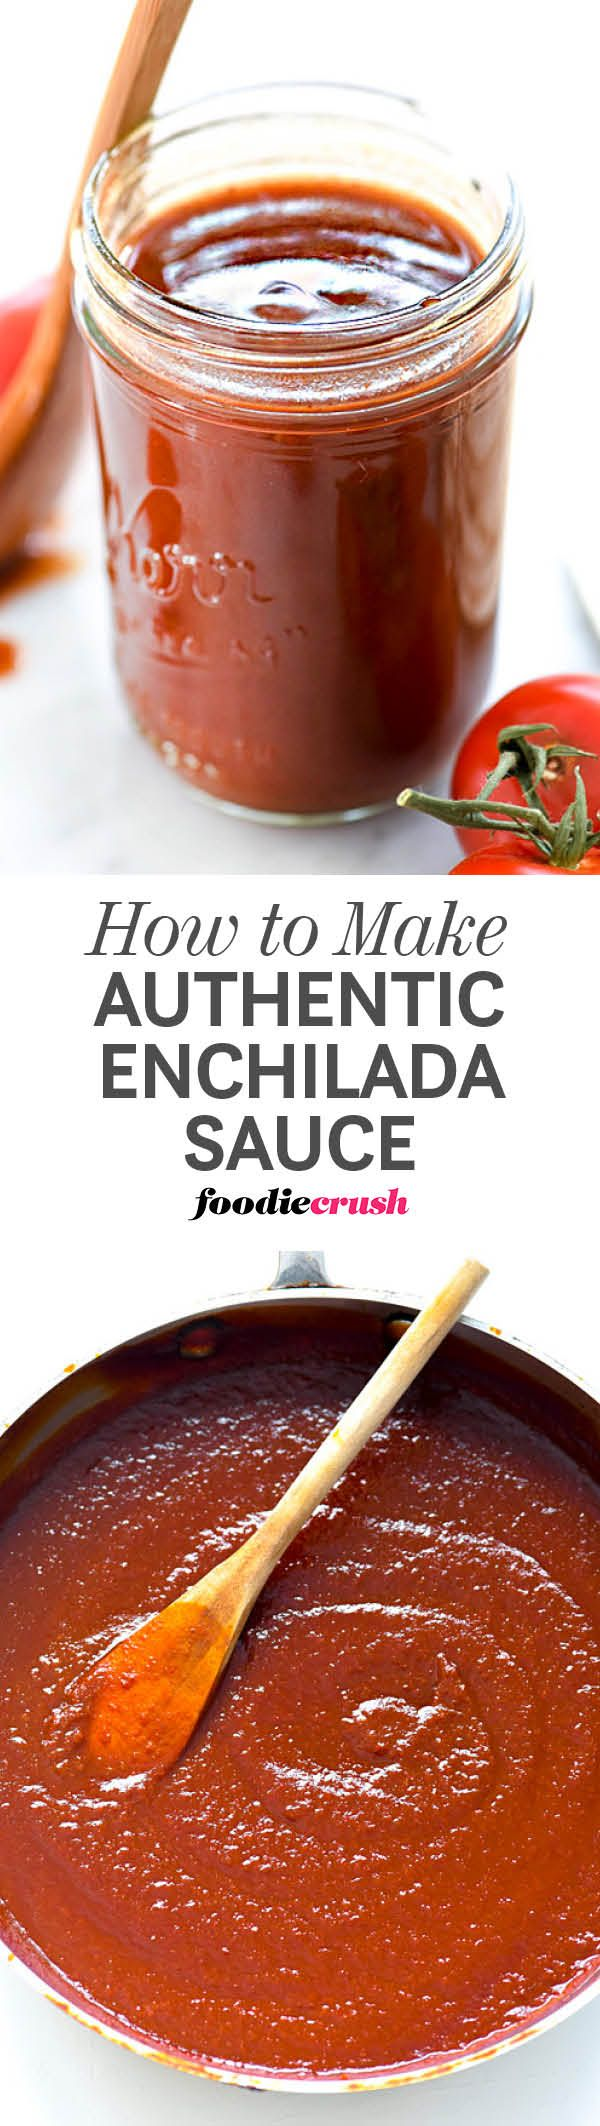 How To Make Authentic Enchilada Sauce